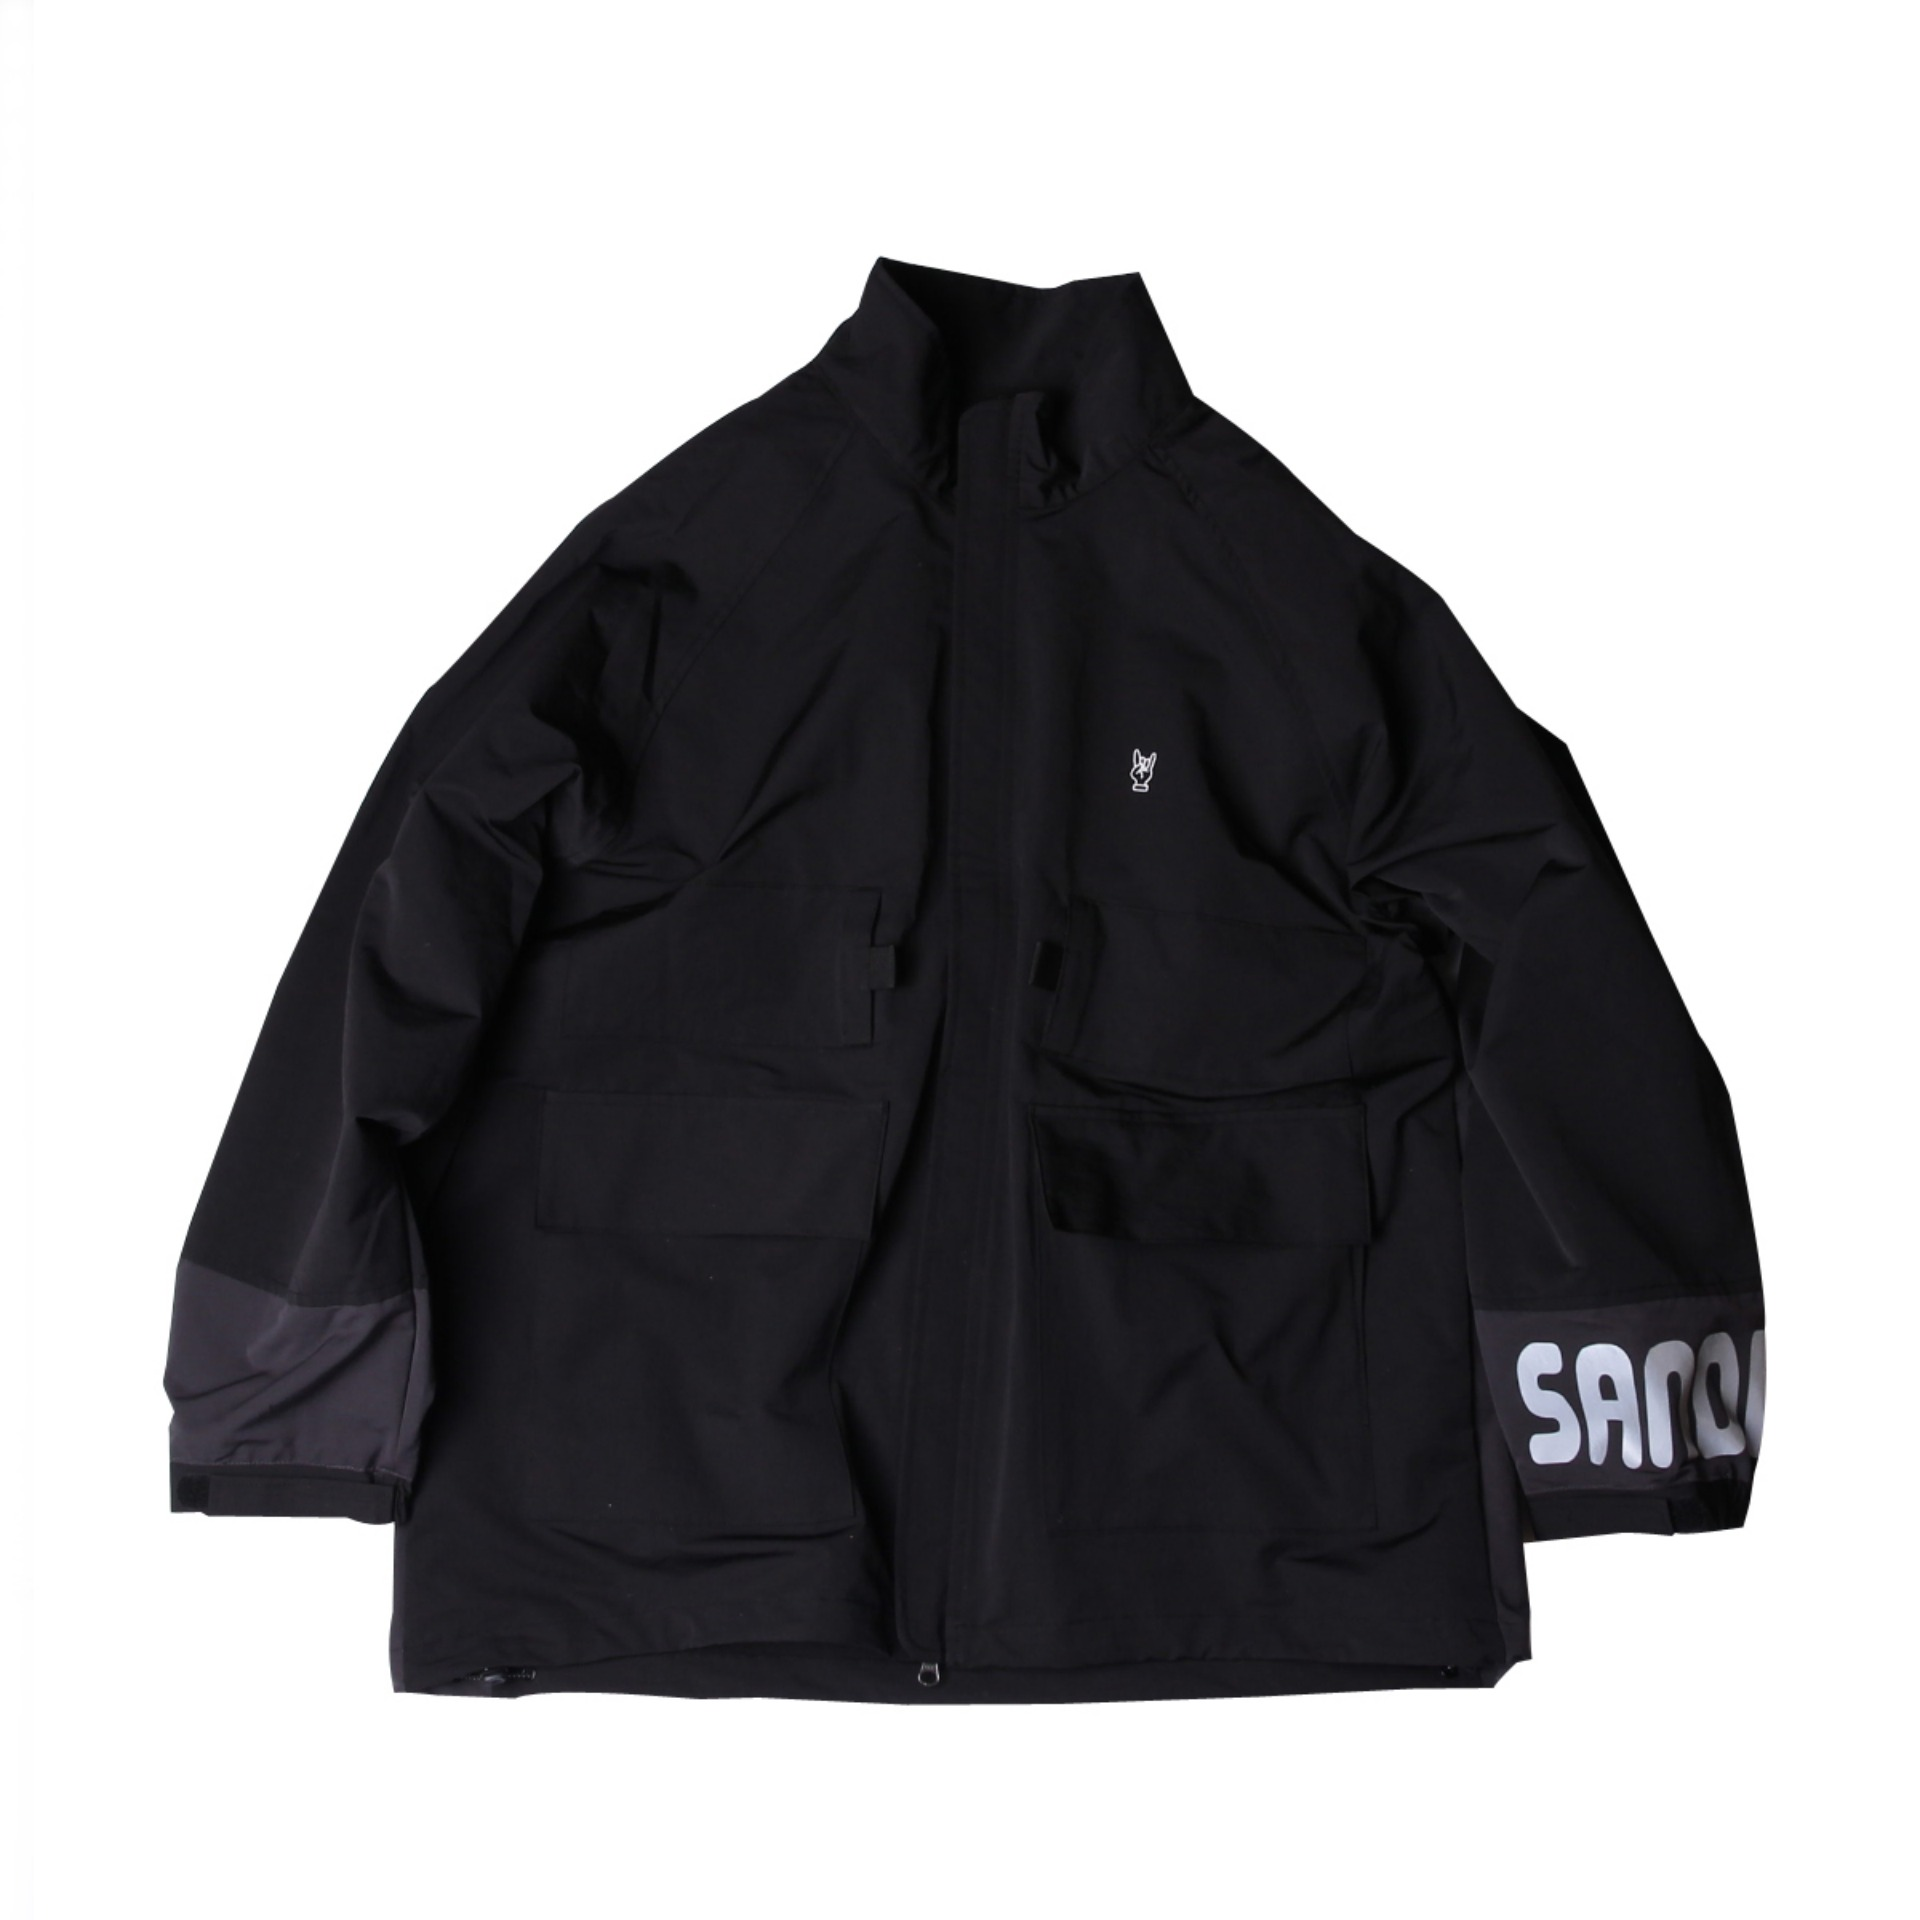 PACKABLE CAMPING JACKET(Black x Black)